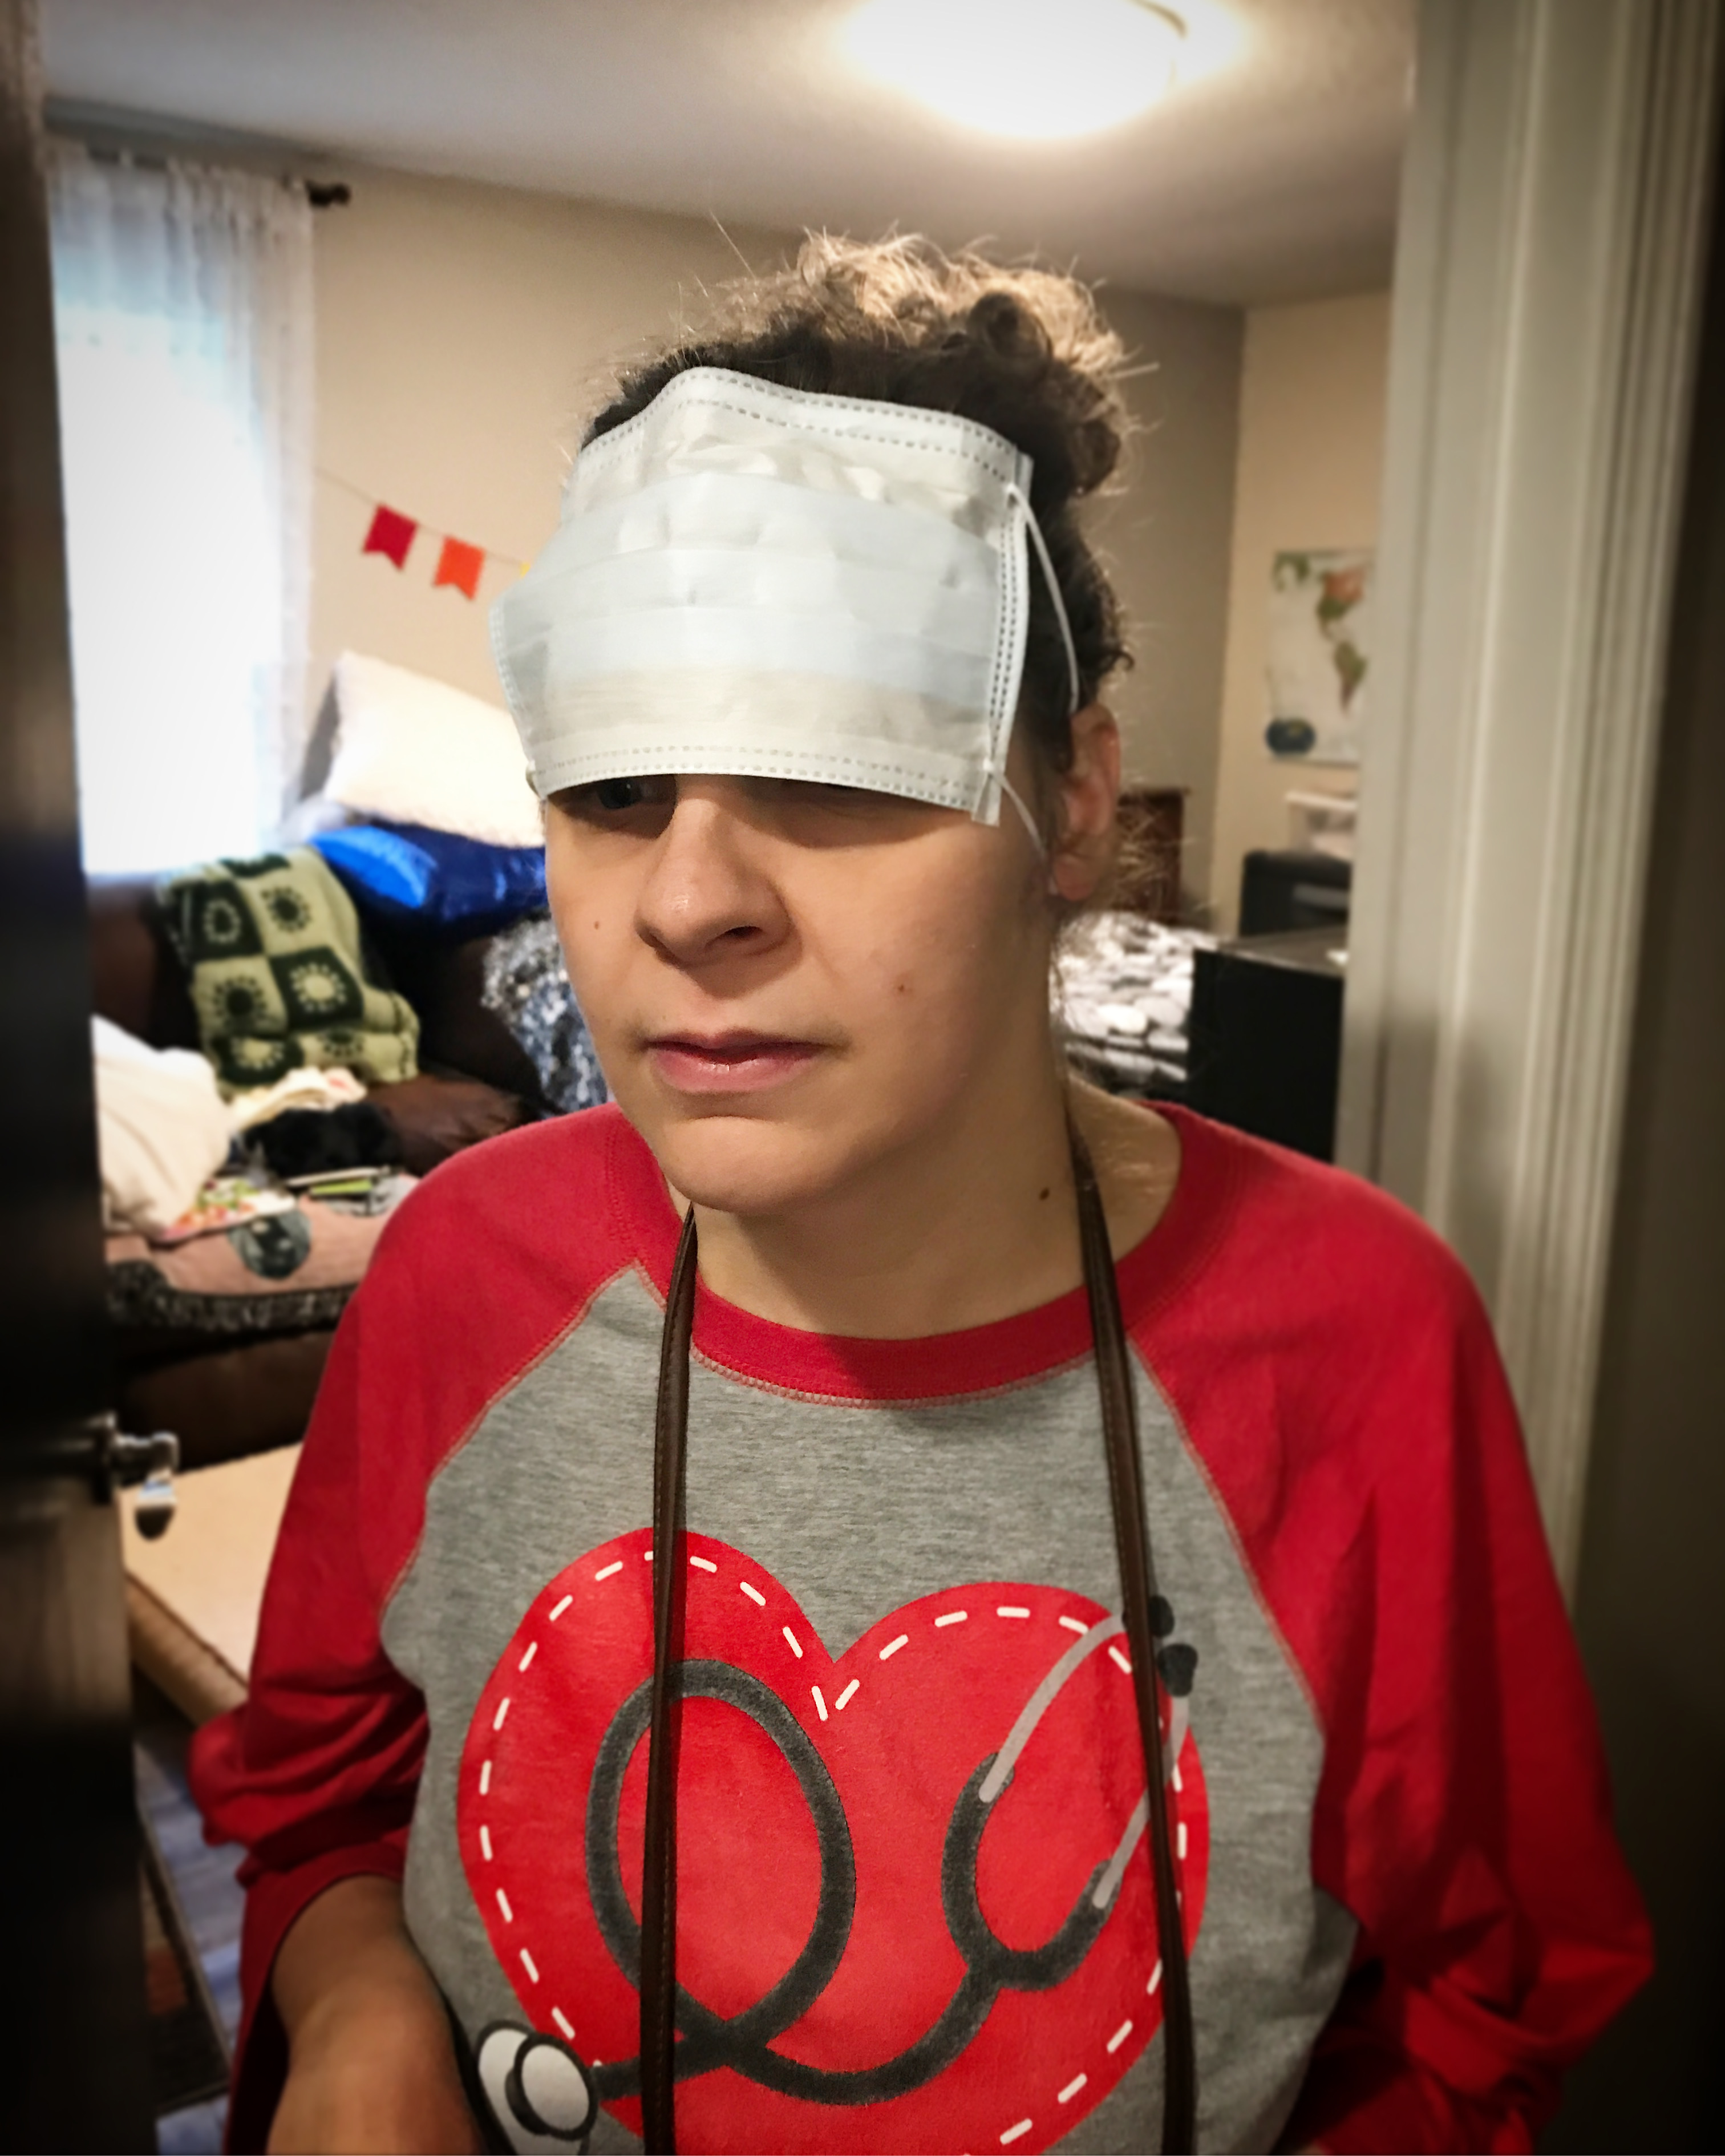 Jess is wearing a tee shirt with a picture of a stethoscope, and has on a medical mask that is covering her eyes and forehead.